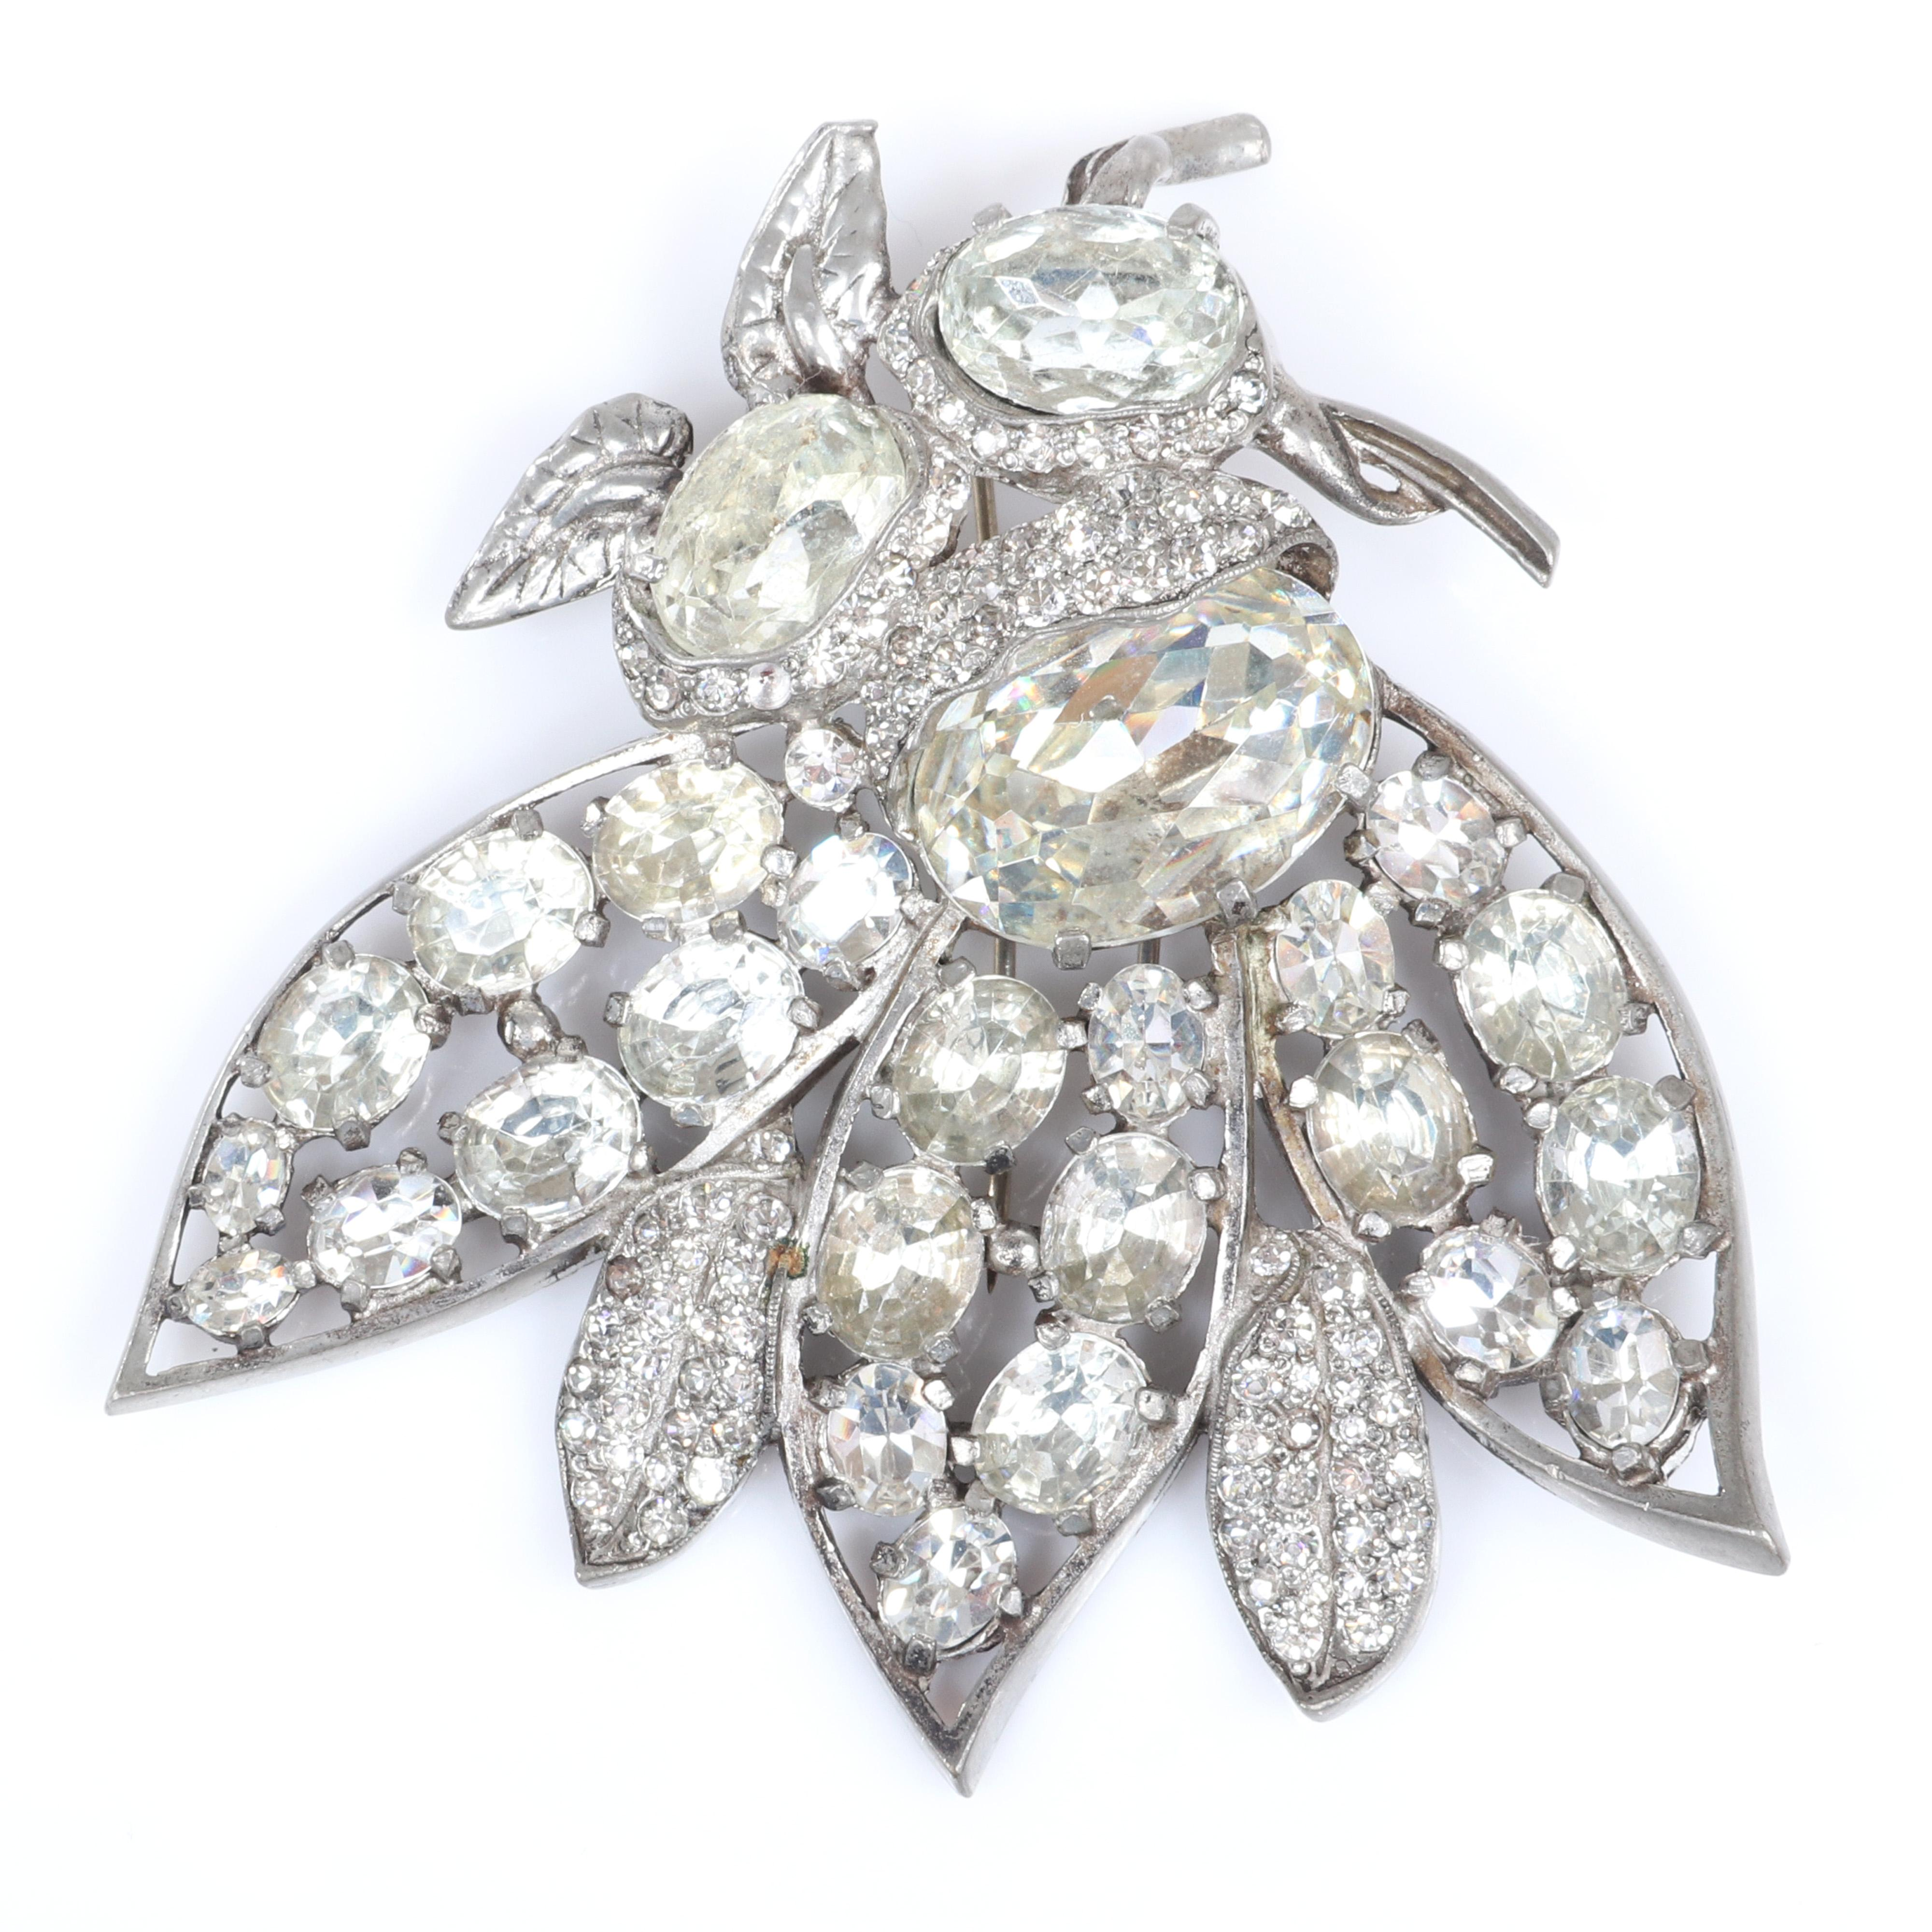 "Eisenberg Original floral diamante fur clip with three large crystals and buds wrapped in pave and decorated with small metalwork leaves, early 1940s. 2 1/4"" x 1 3/4"""